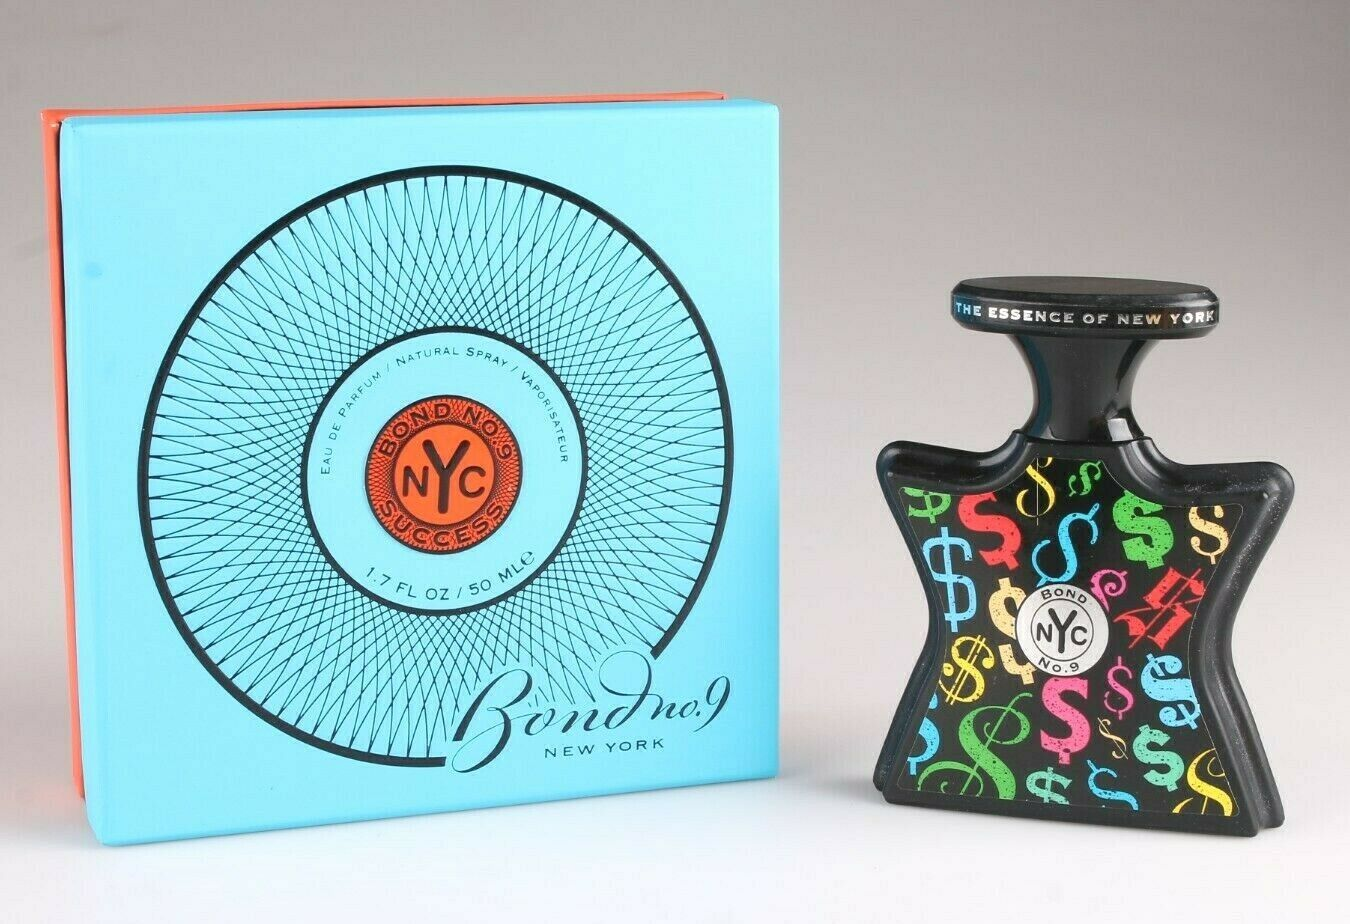 Bond No. 9 Success is the Essence of New York 1.7oz / 50ml EDP in Box